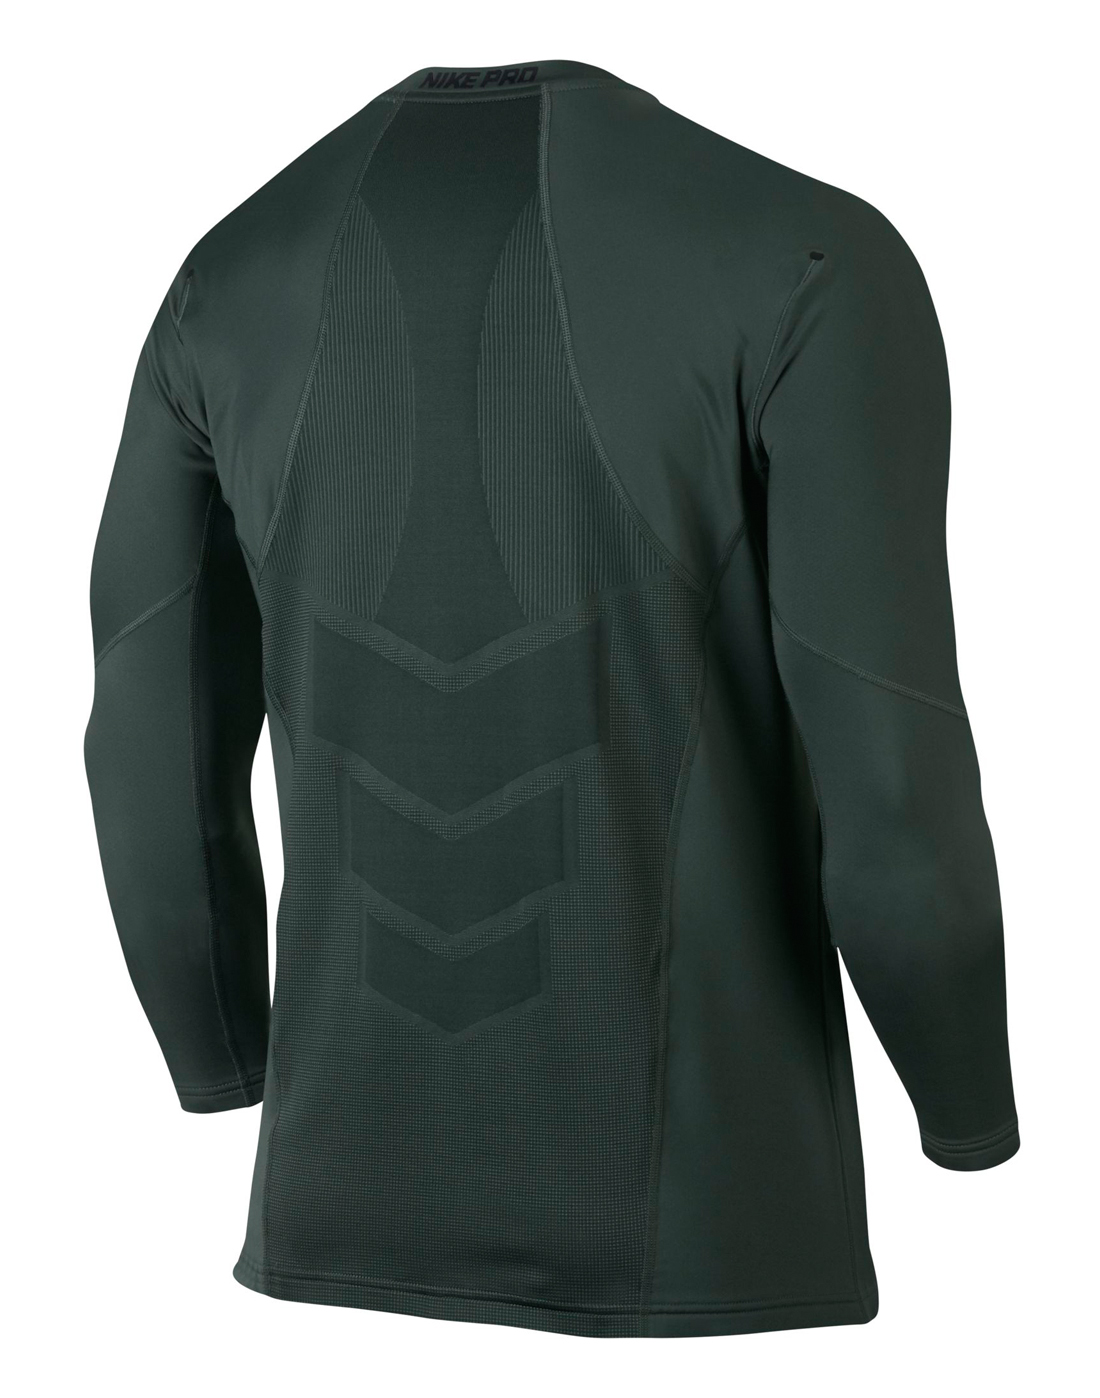 7a882168 Mens Pro Hyperwarm Fitted Top · Mens Pro Hyperwarm Fitted Top